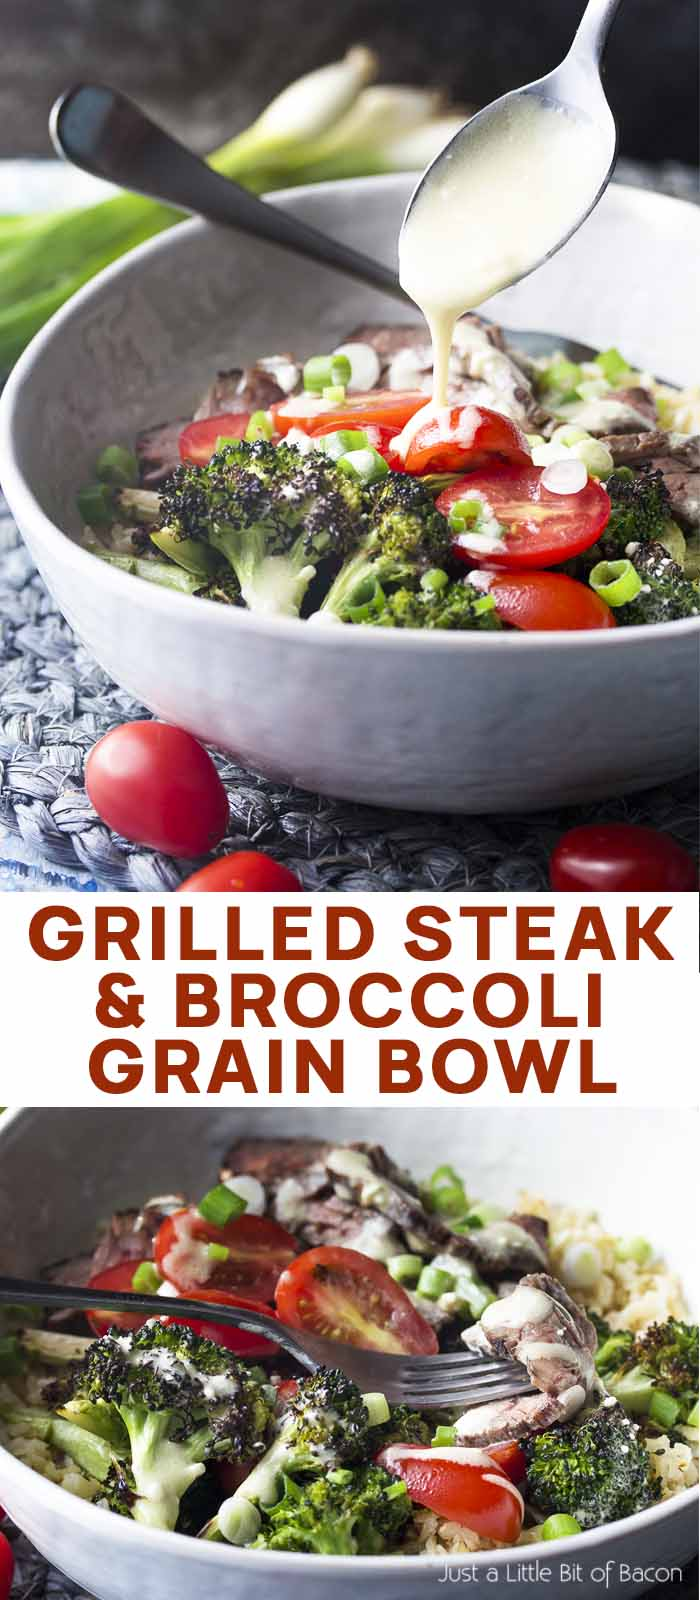 Two views of the salad in a bowl with text overlay - Grilled Steak and Broccoli Grain Bowl.